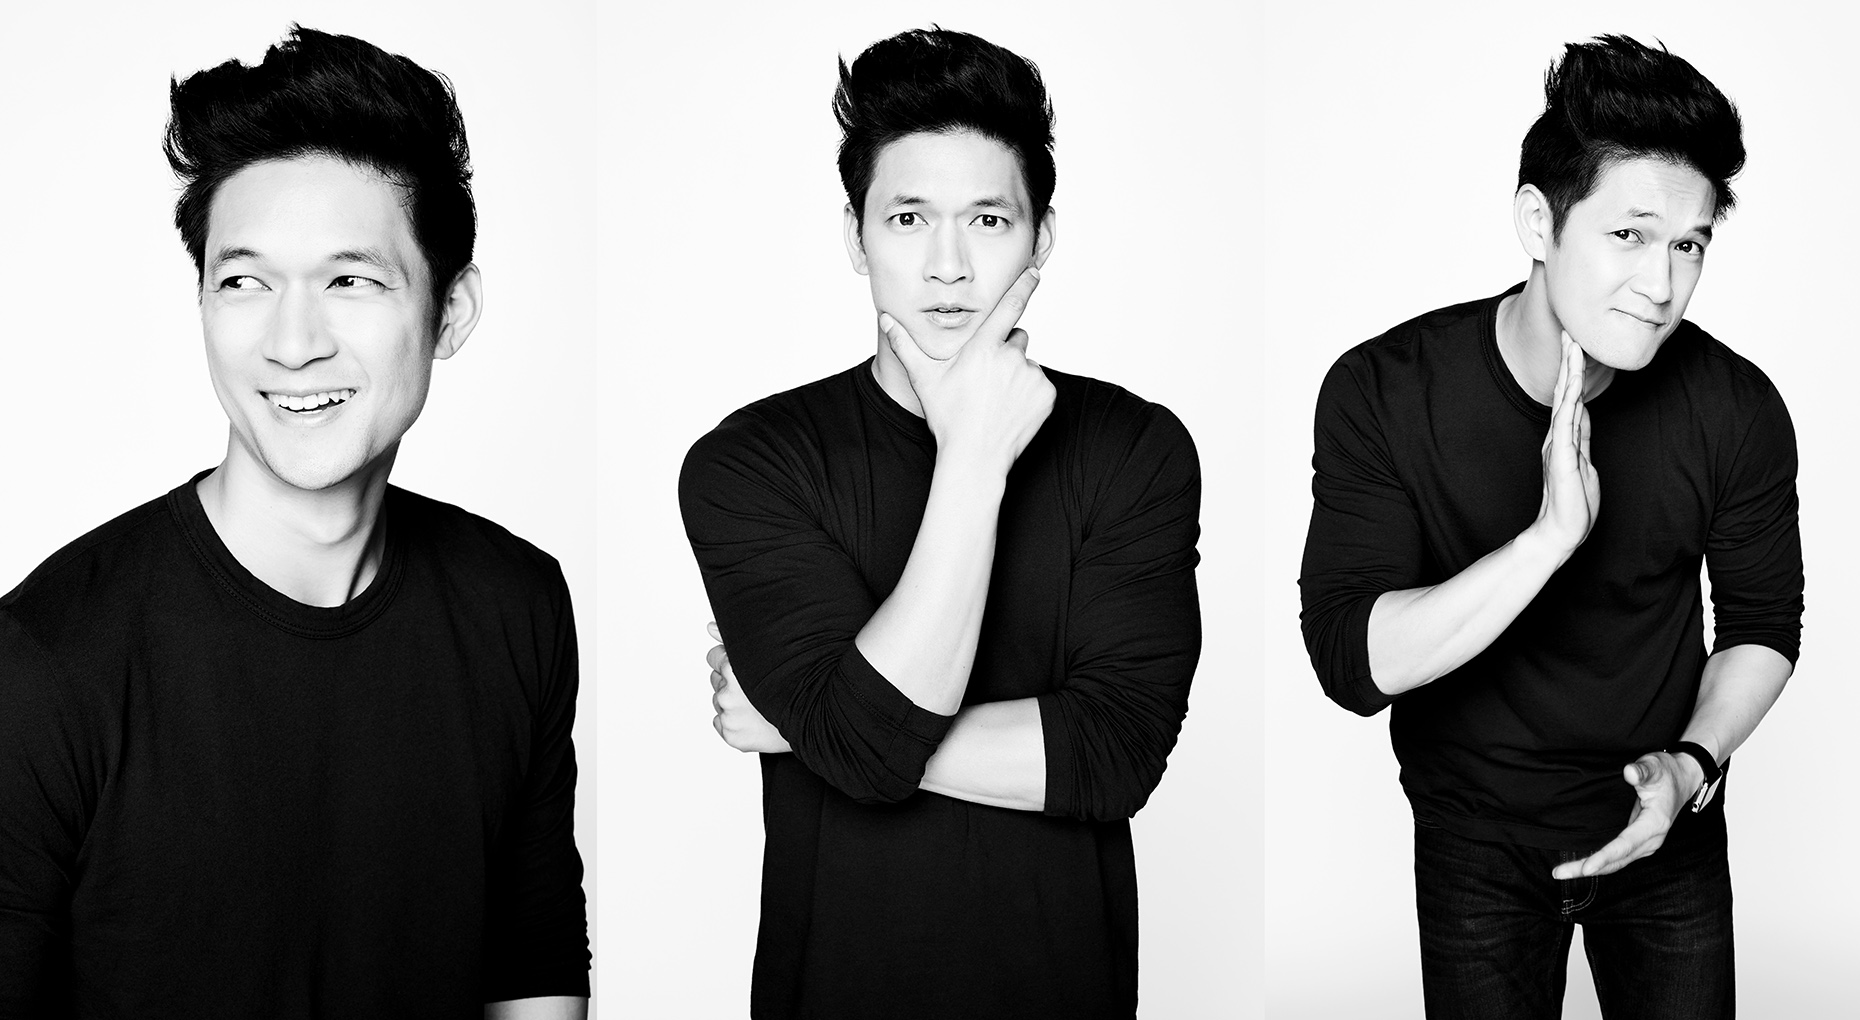 HarryShumJr_Comp_B&W_WEB